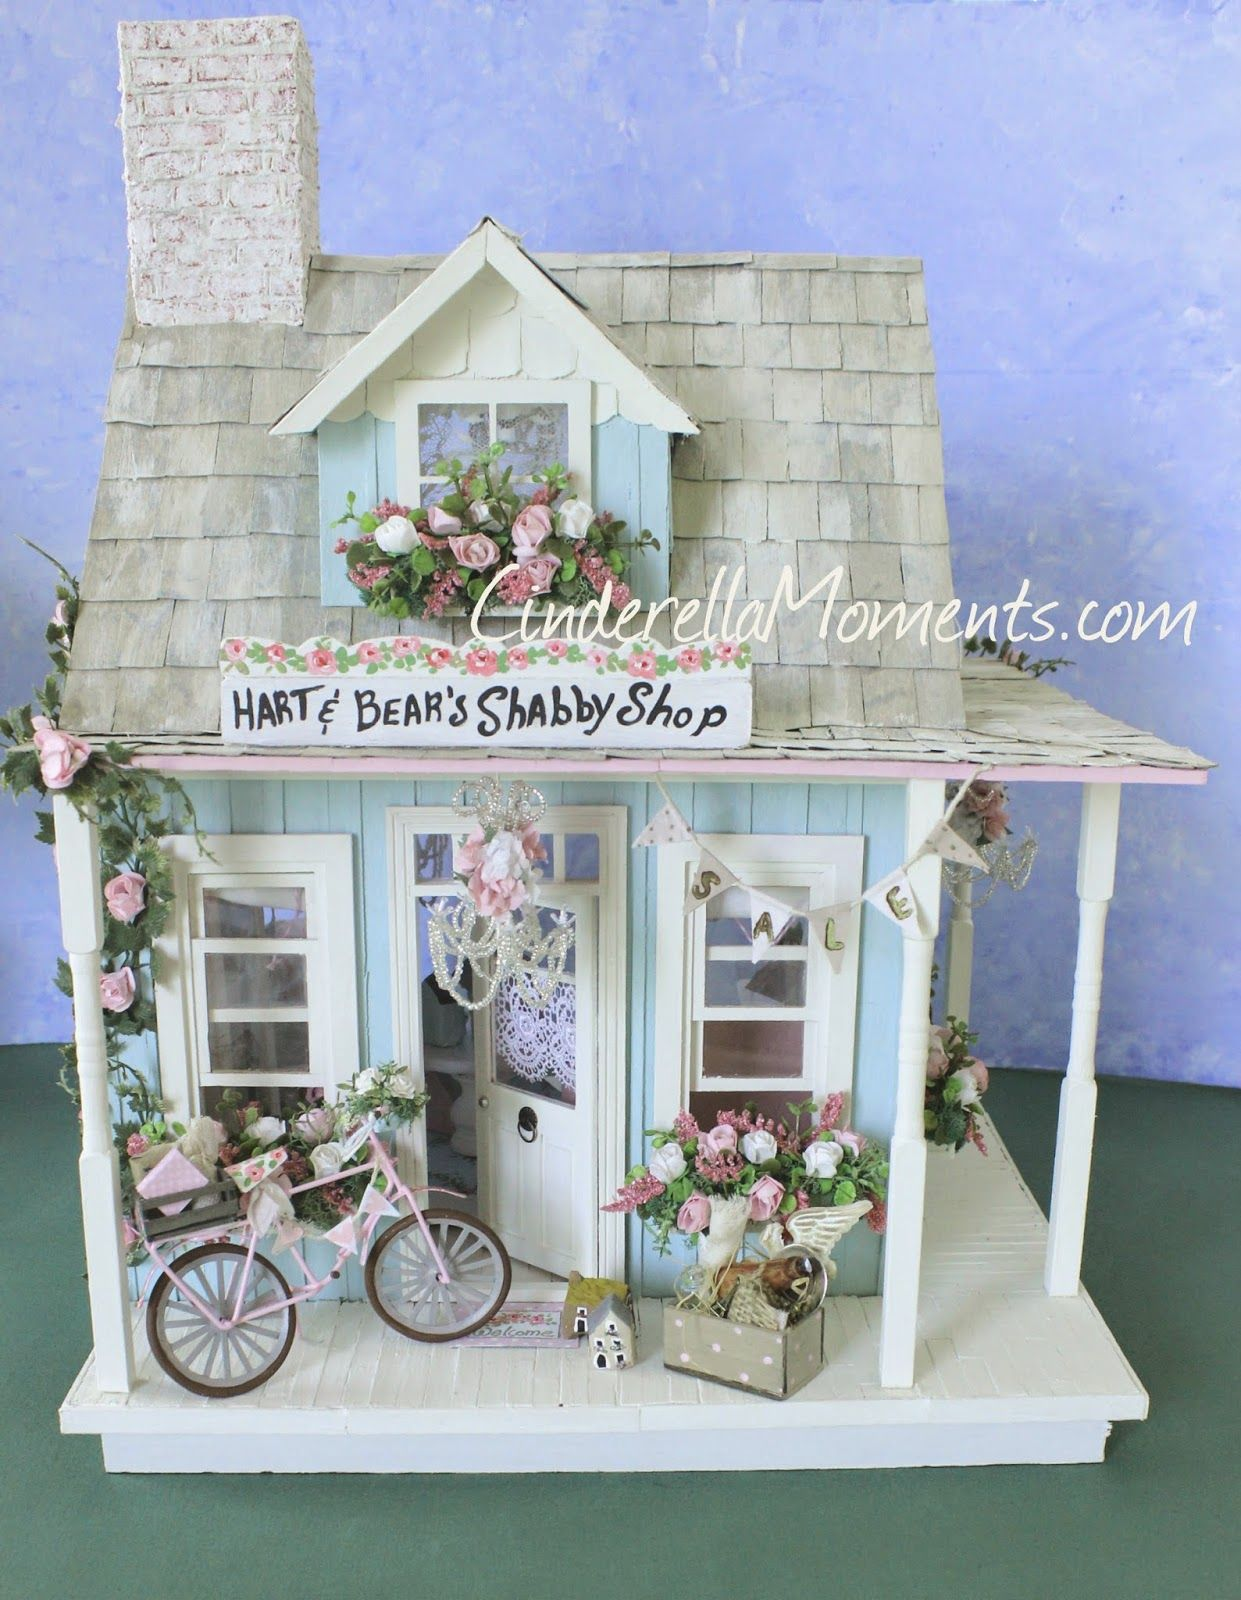 Miniatur Haus Selber Bauen Hart And Bear 39s Shabby Shop Made Entirely By Hand By